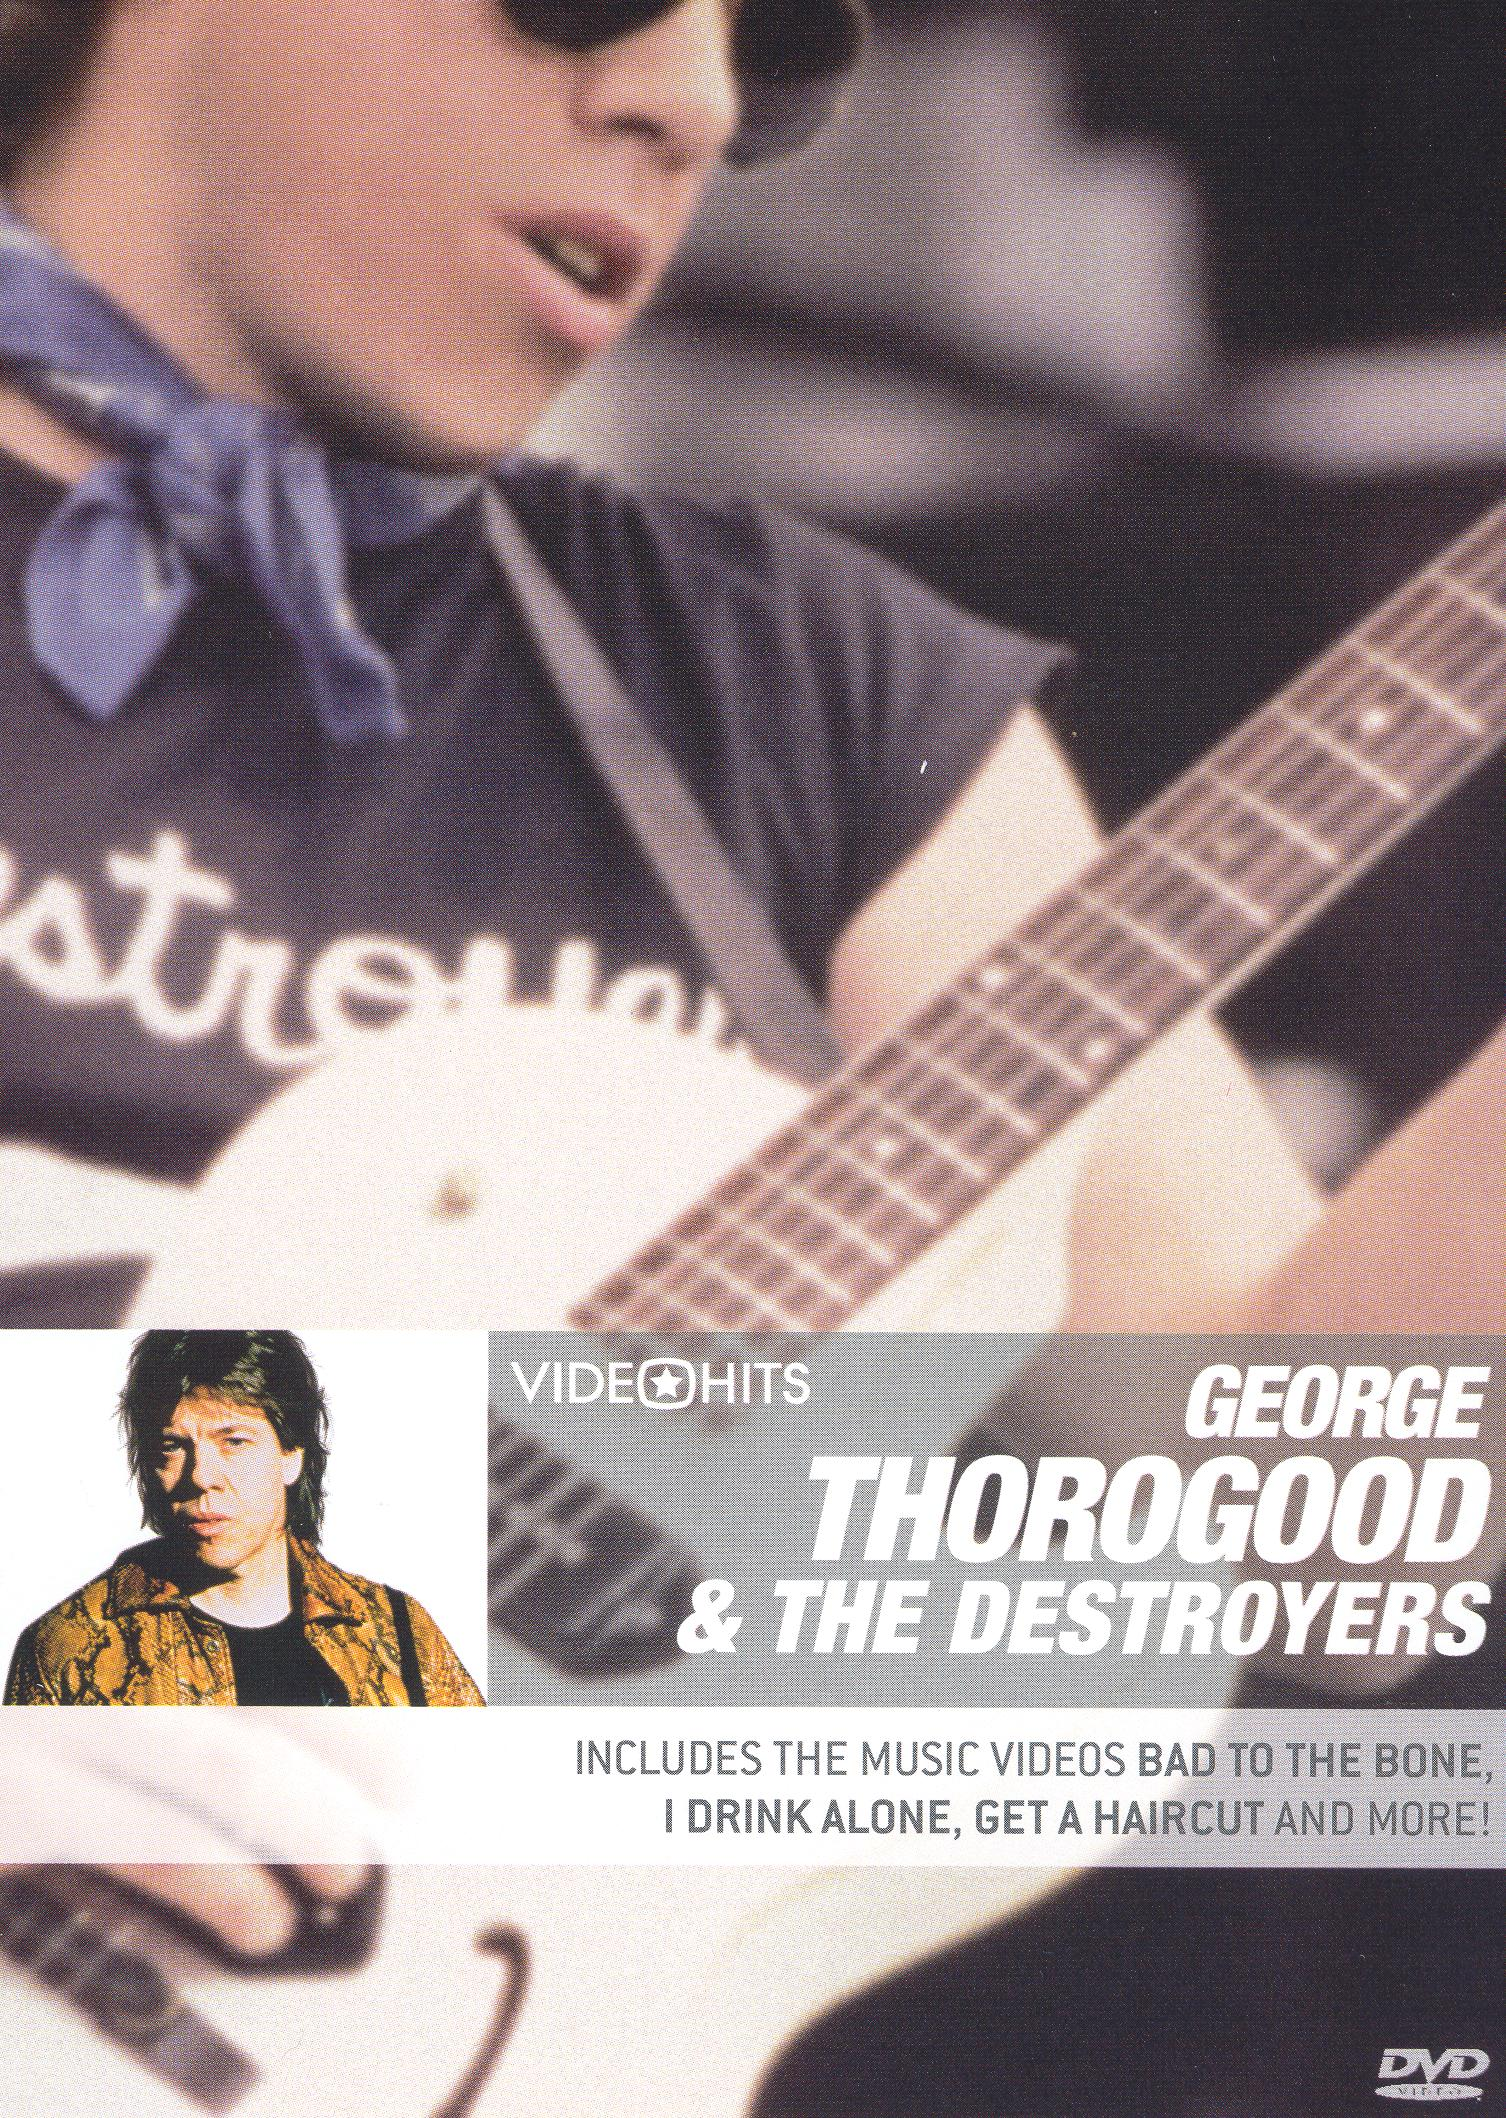 Video Hits: George Thorogood & The Destroyers